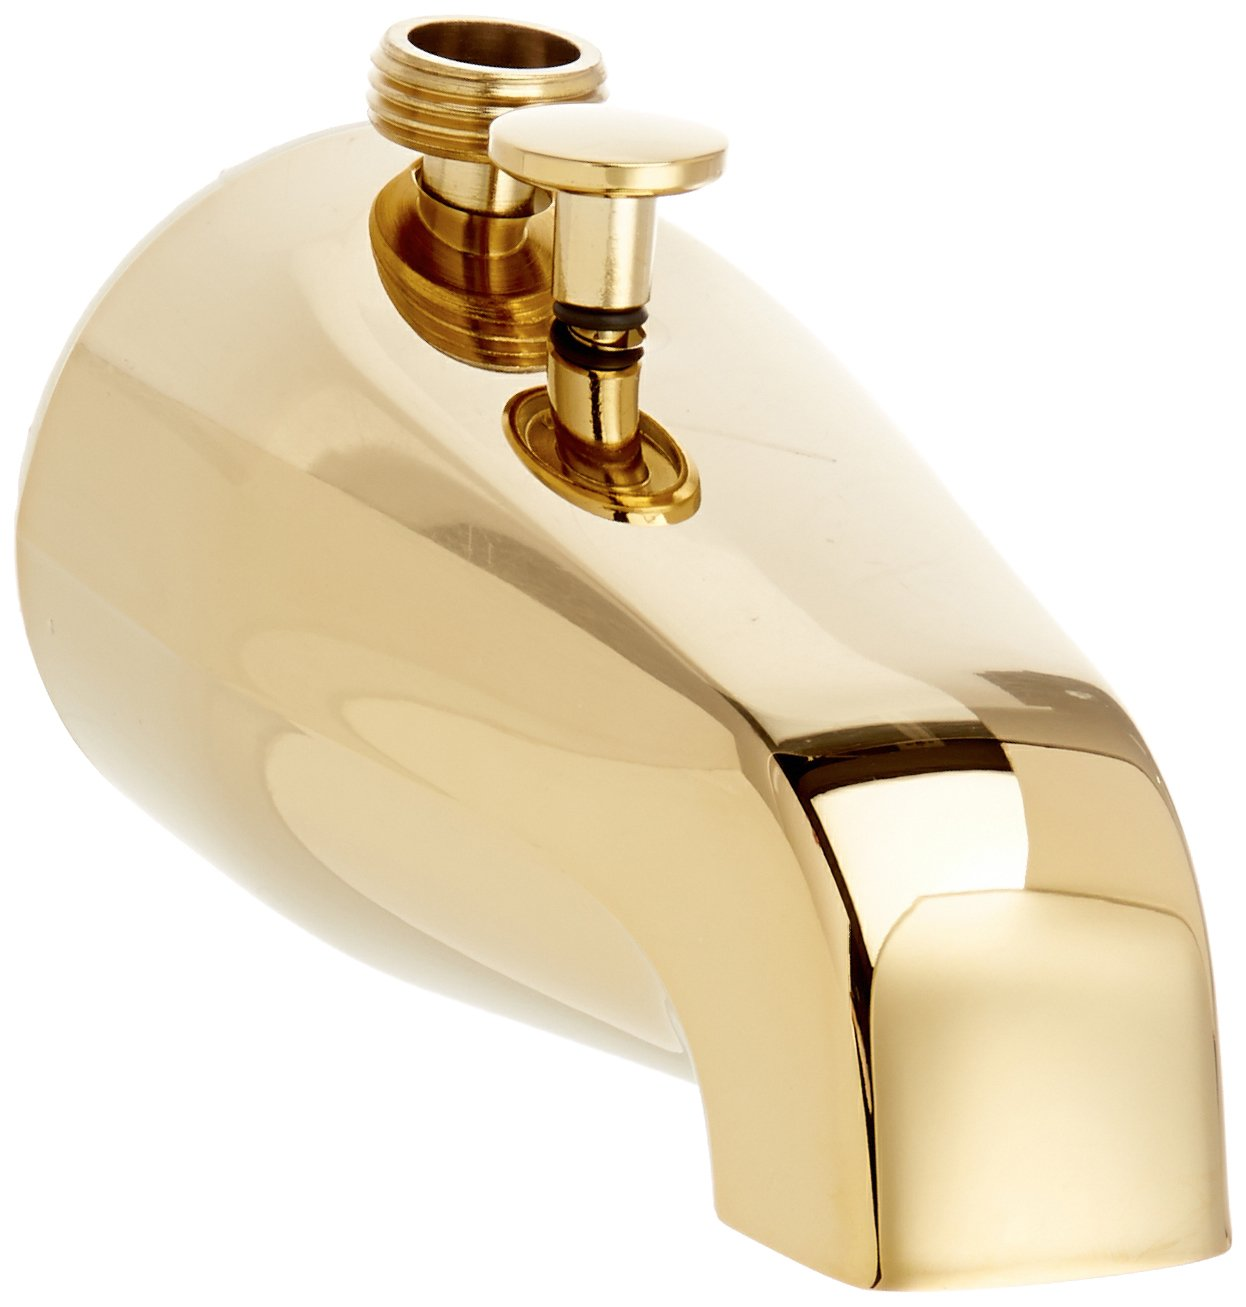 Jones Stephens D03010 Polished Brass Diverter Spout with Hand Shower Top Connection